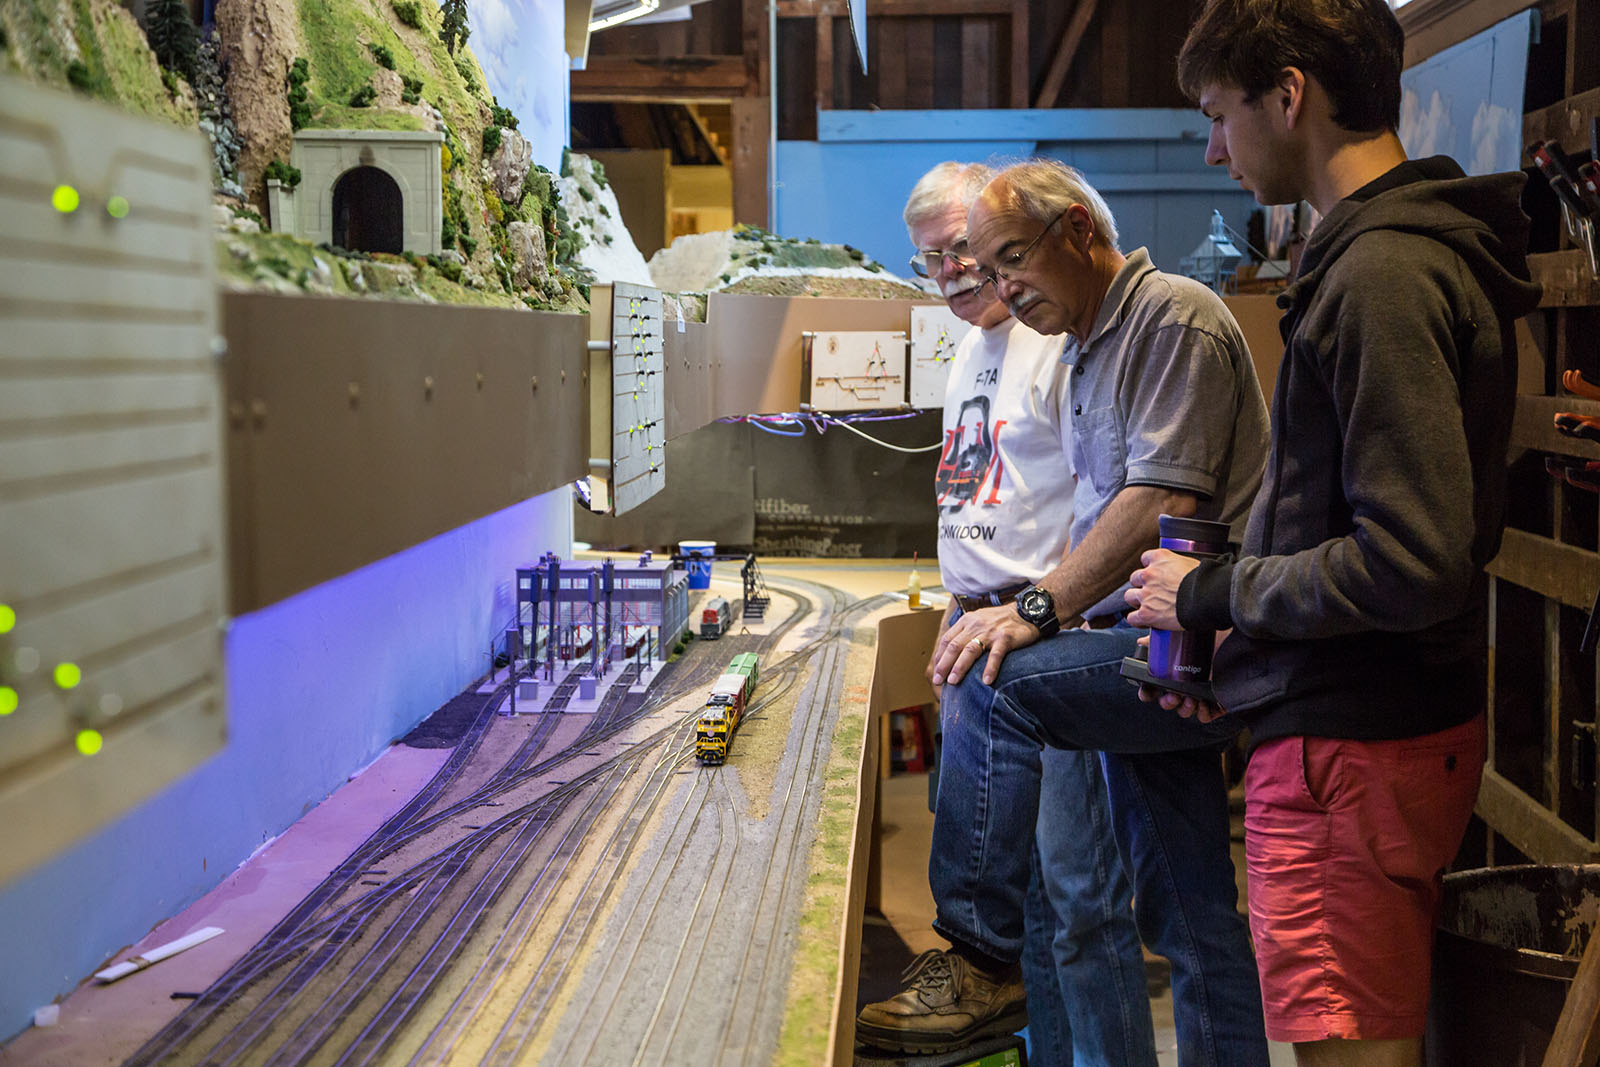 Explore the Multifaceted, Century-Old World of Model Railroads